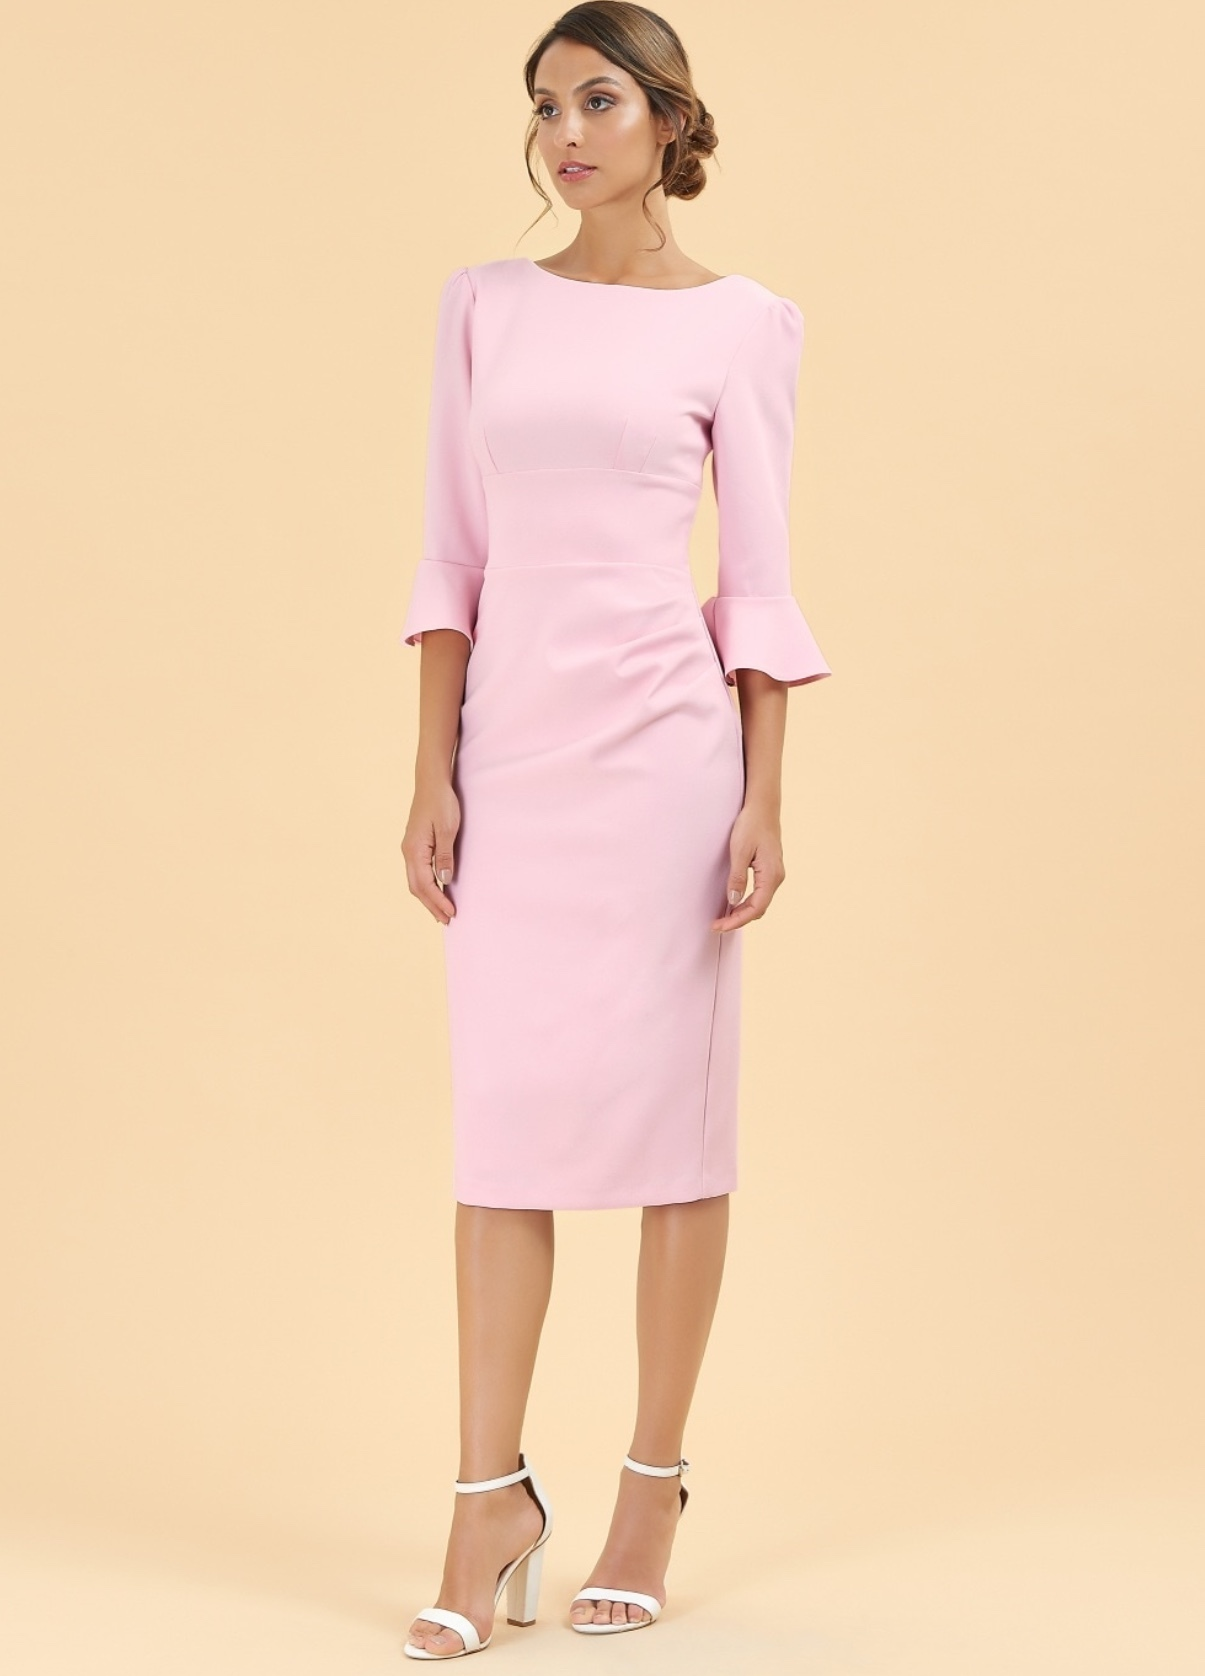 Odelle Dress in Pale Pink PDCDRODPPINK